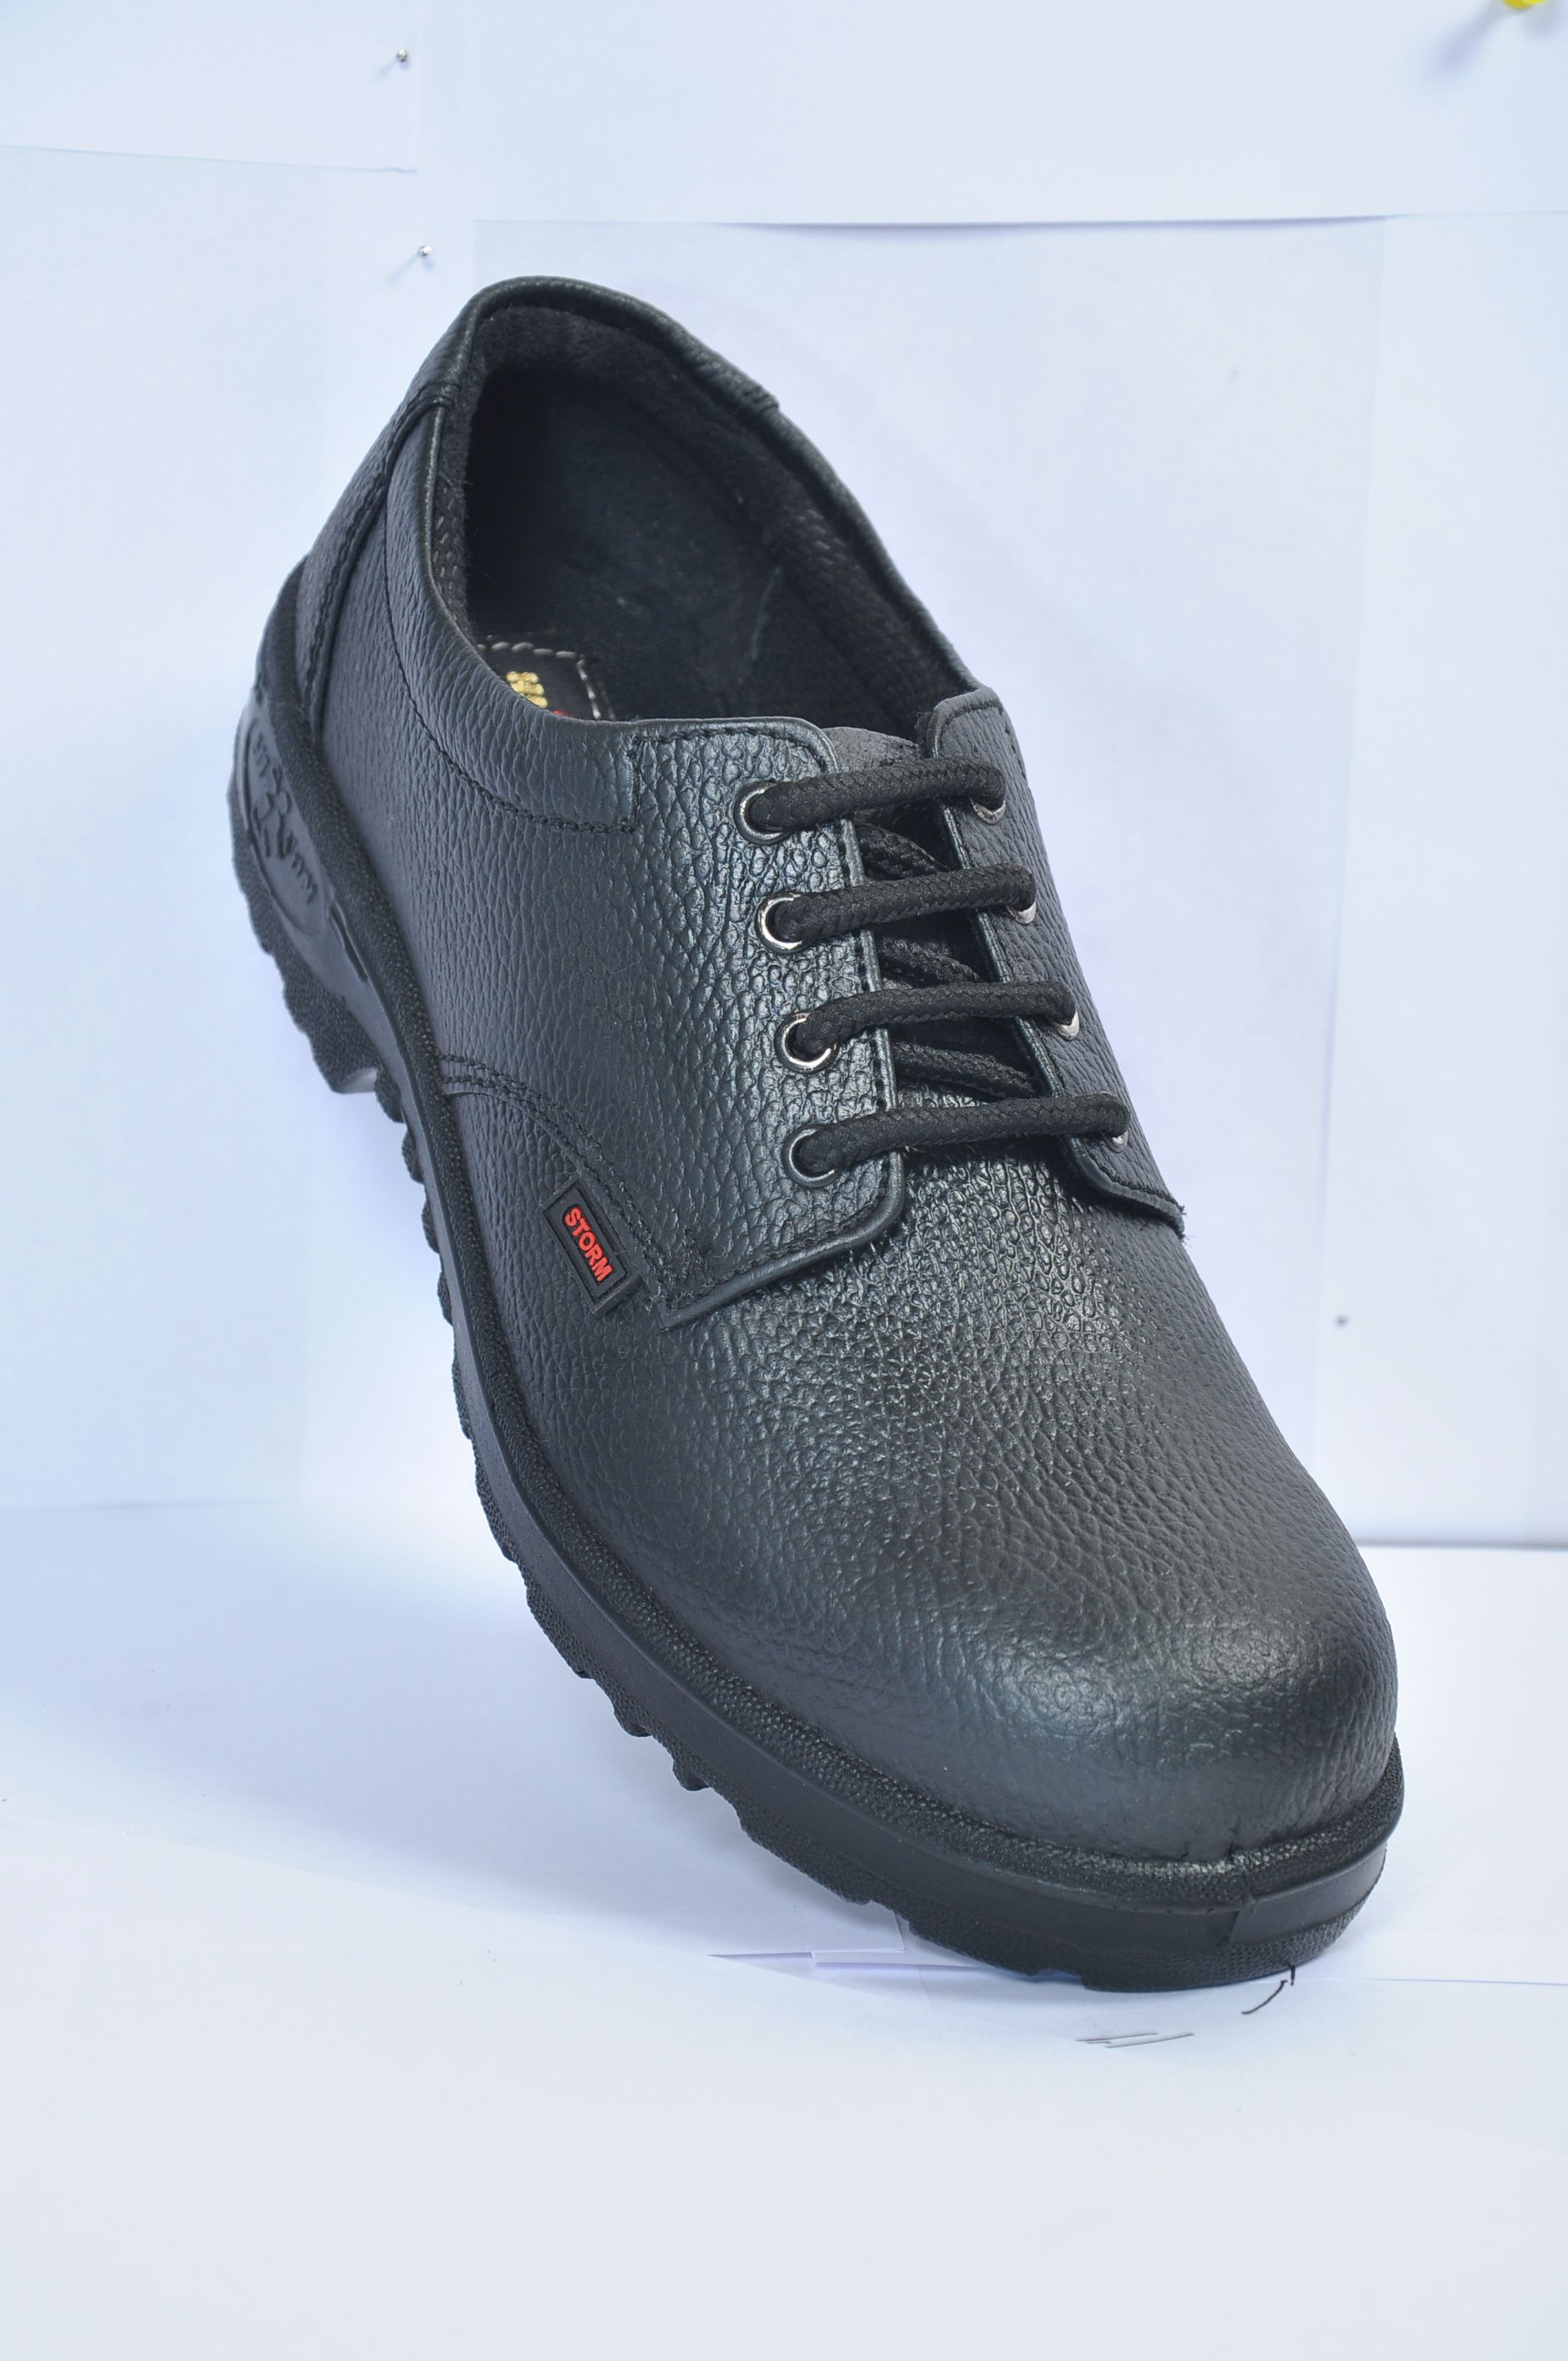 Safetyshoes ISI Marked Hillsonshoes manufactures ISI